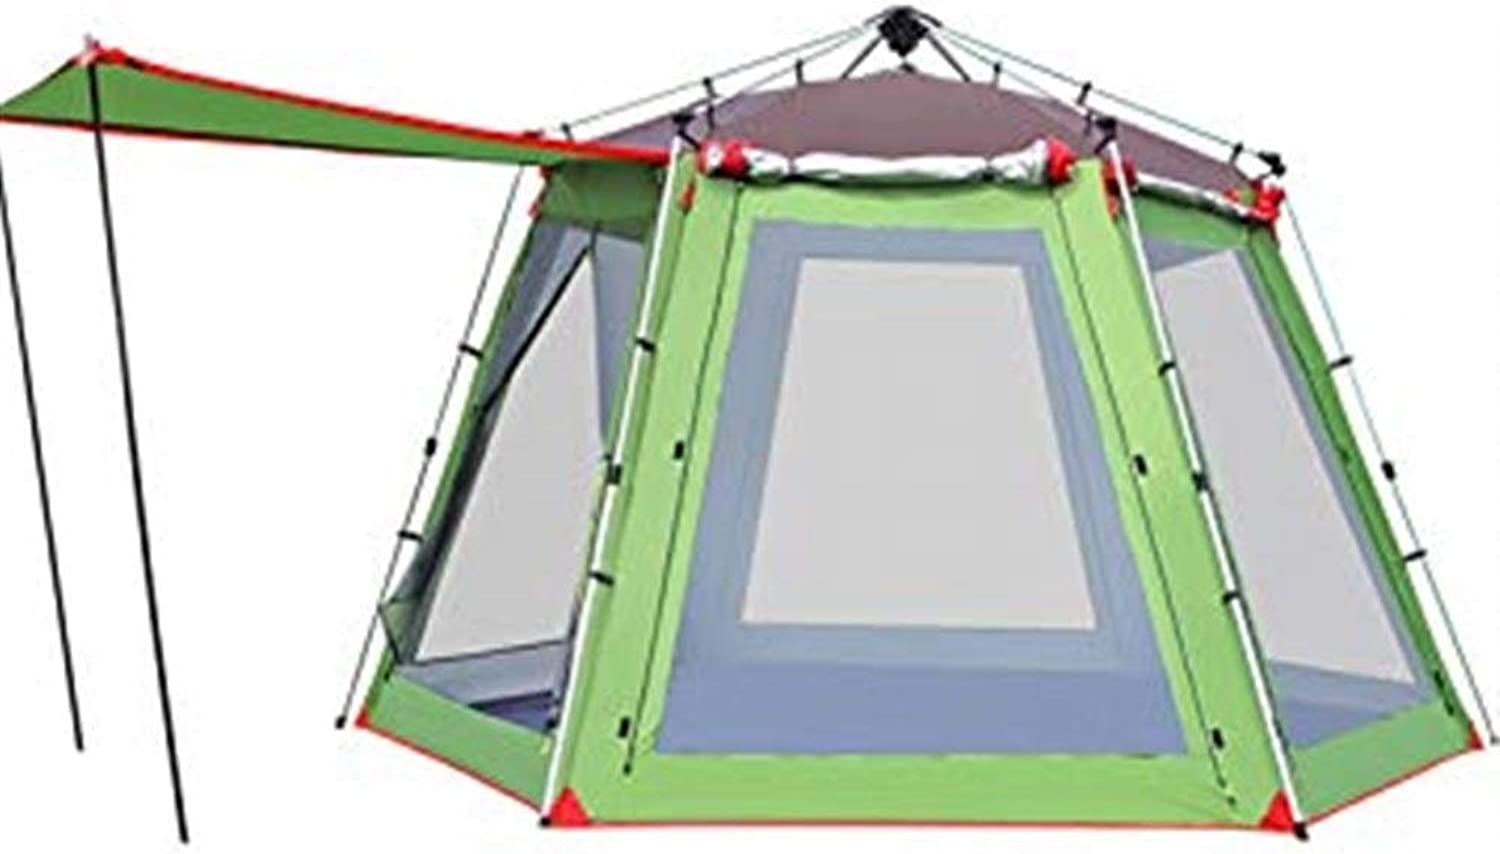 Camping Tent Camping Tent 5 8 People Telescopic Aluminum Alloy Camping Equipment Family Camping Tent